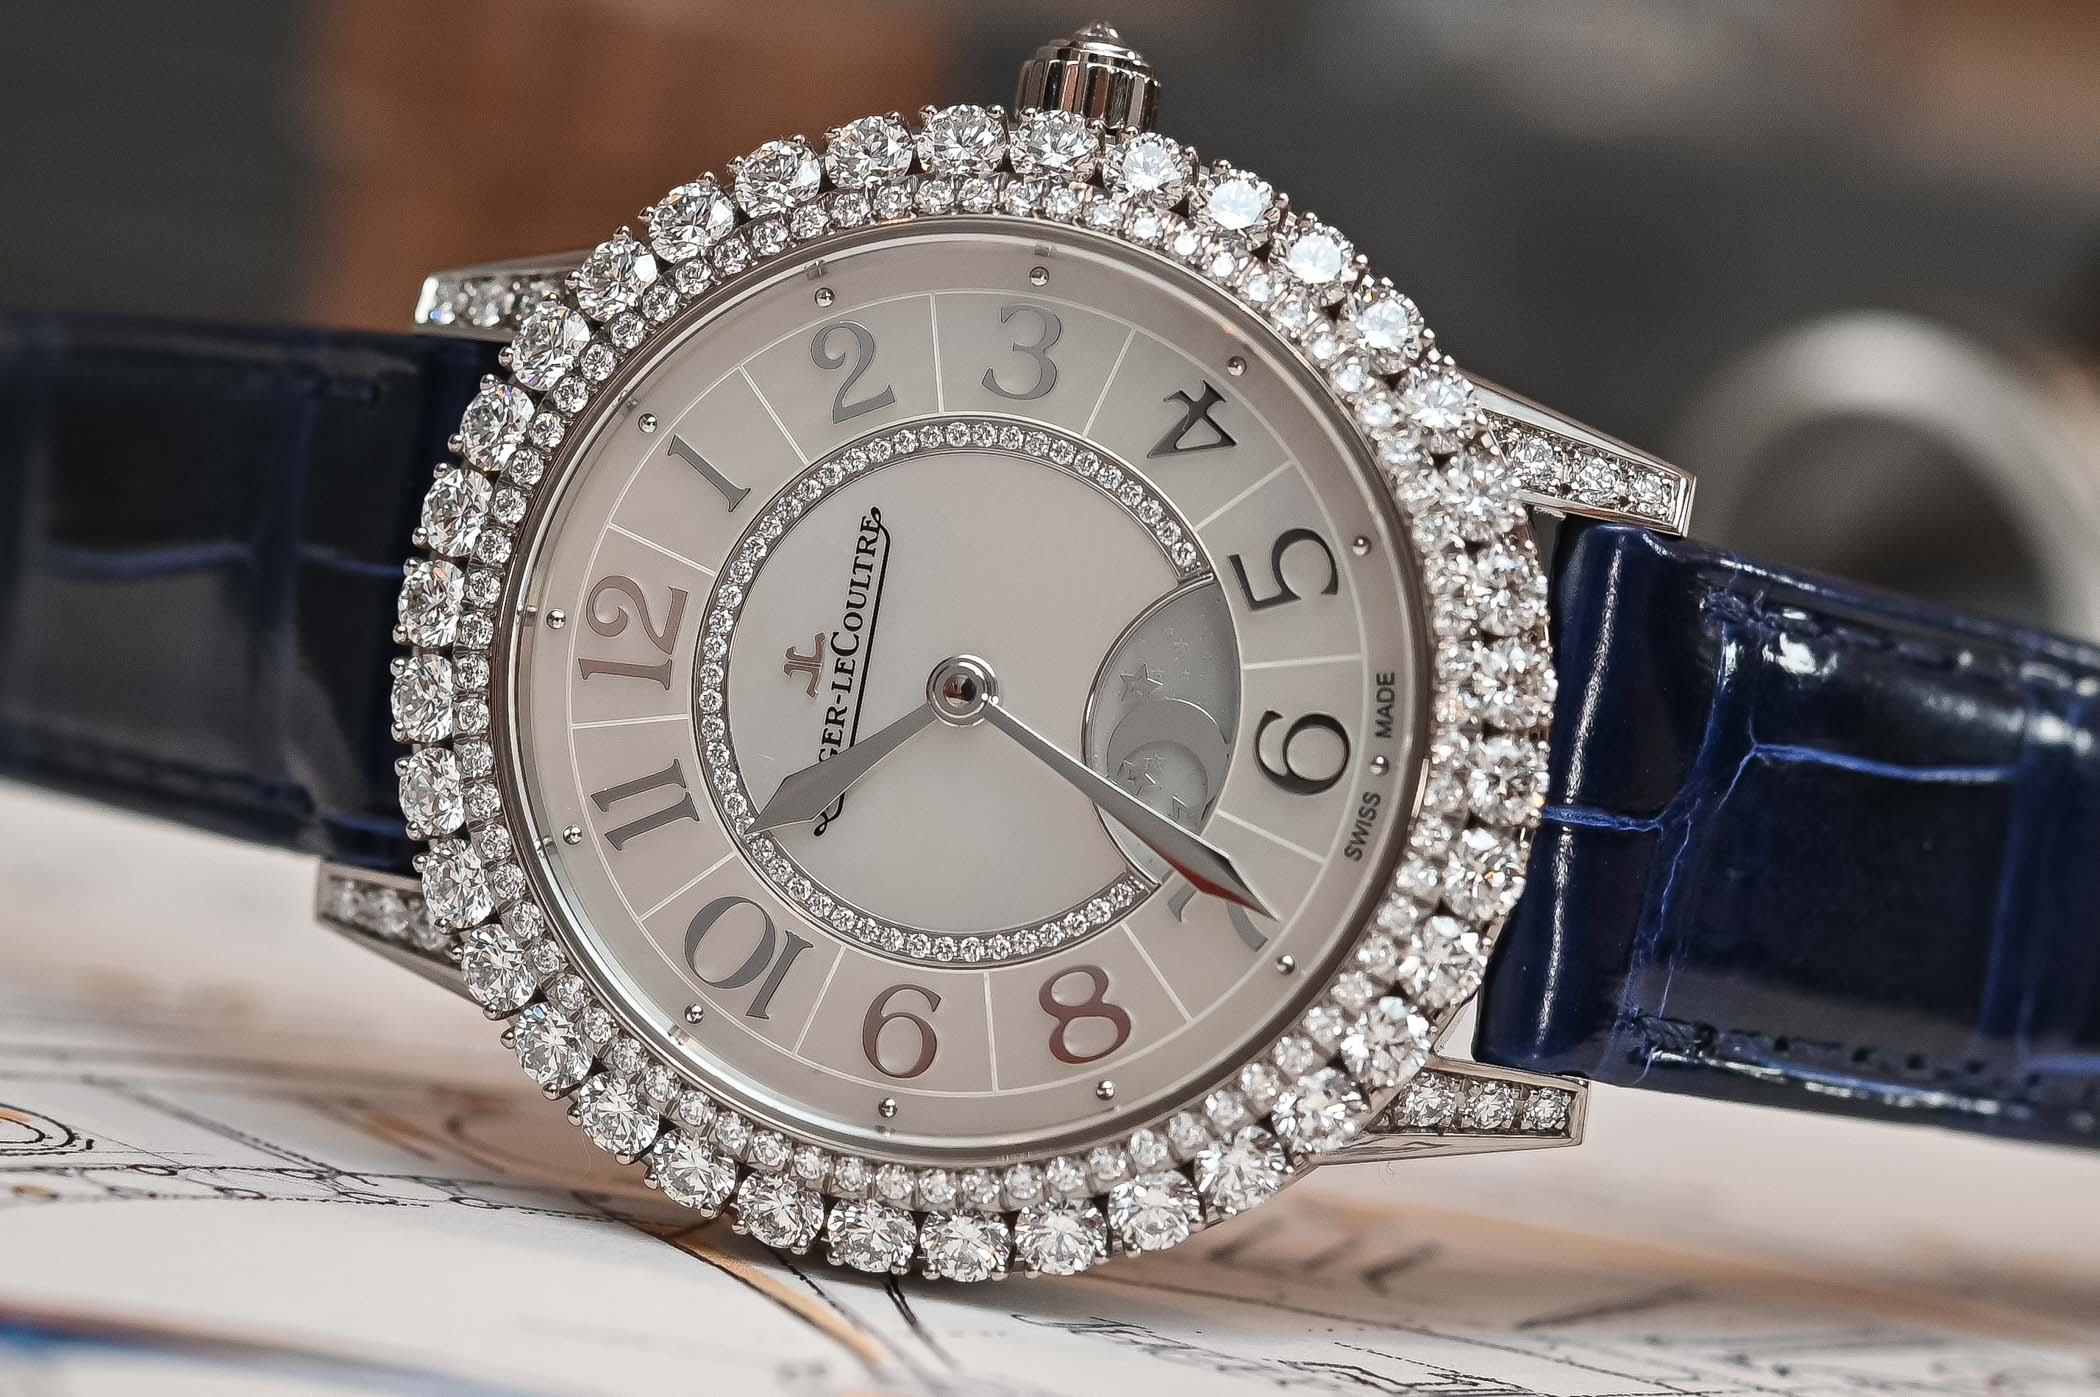 Jaeger-LeCoultre Rendez-Vous Night and Day Jewellery Watch - 5